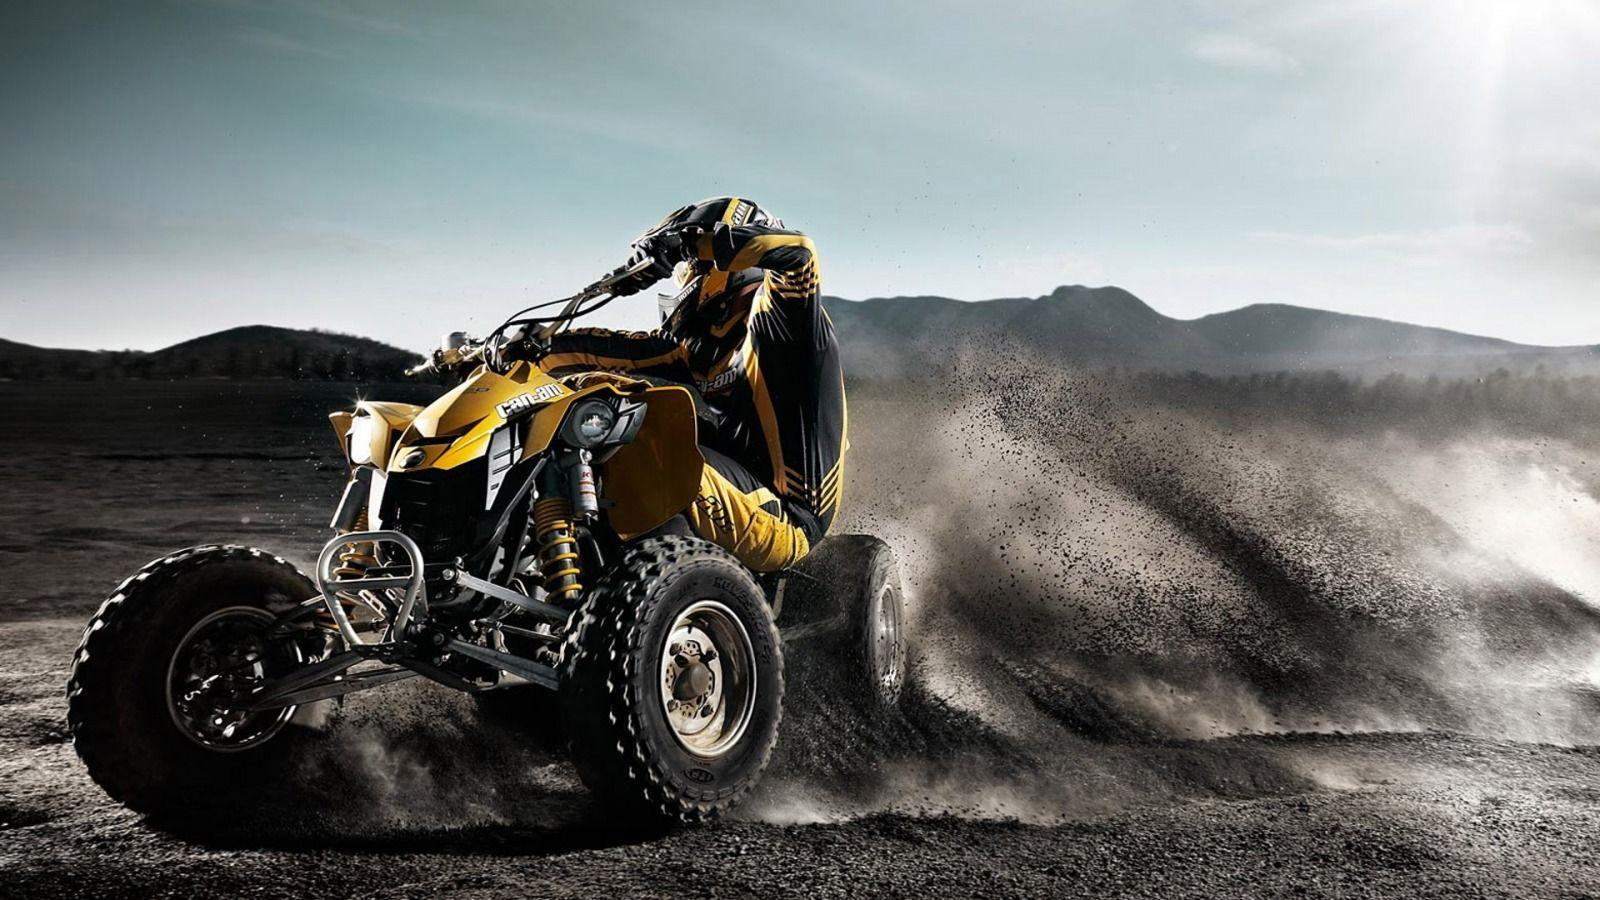 Cool ATV Wallpapers - WallpaperSafari